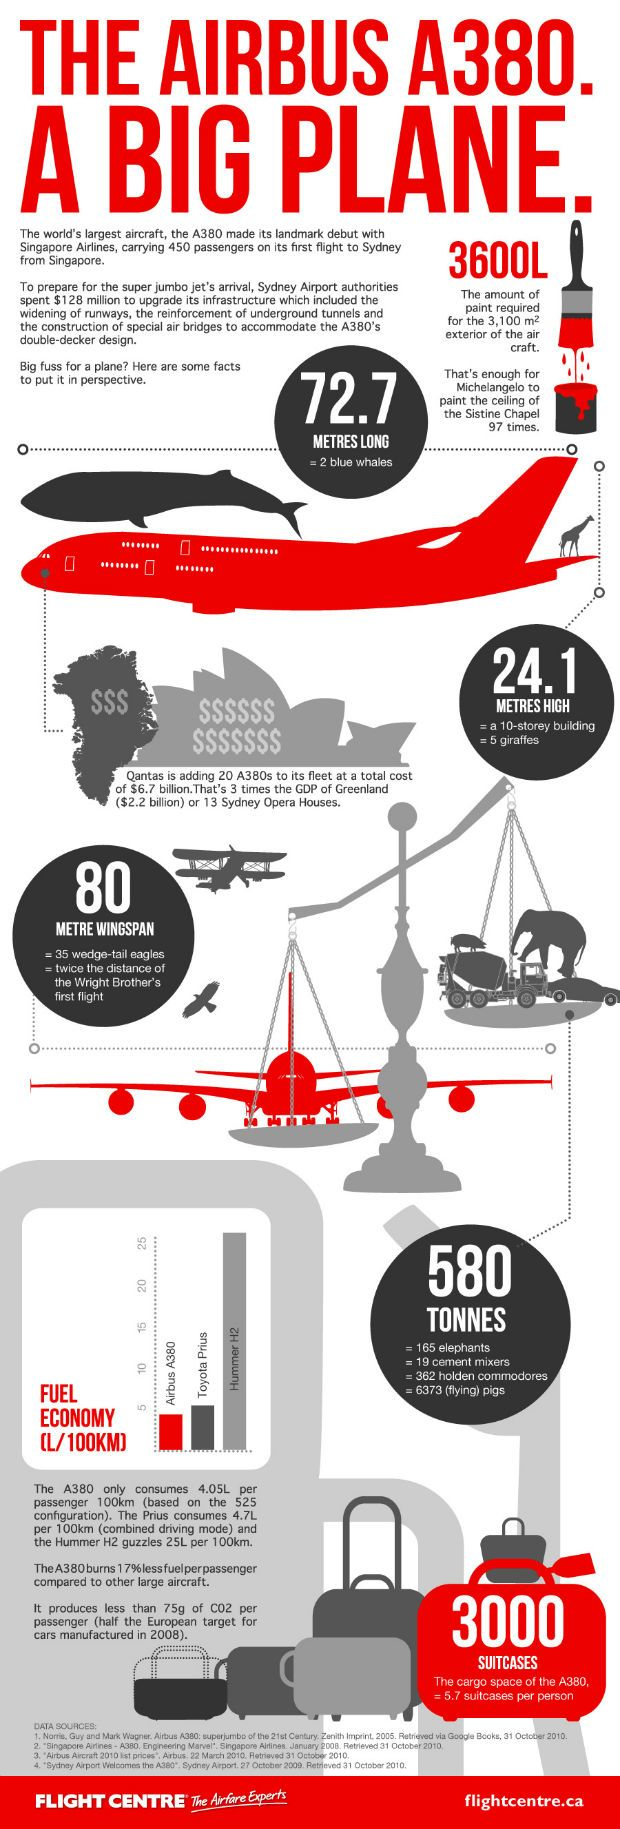 Infographic: Amazing Facts about the A380 Airbus